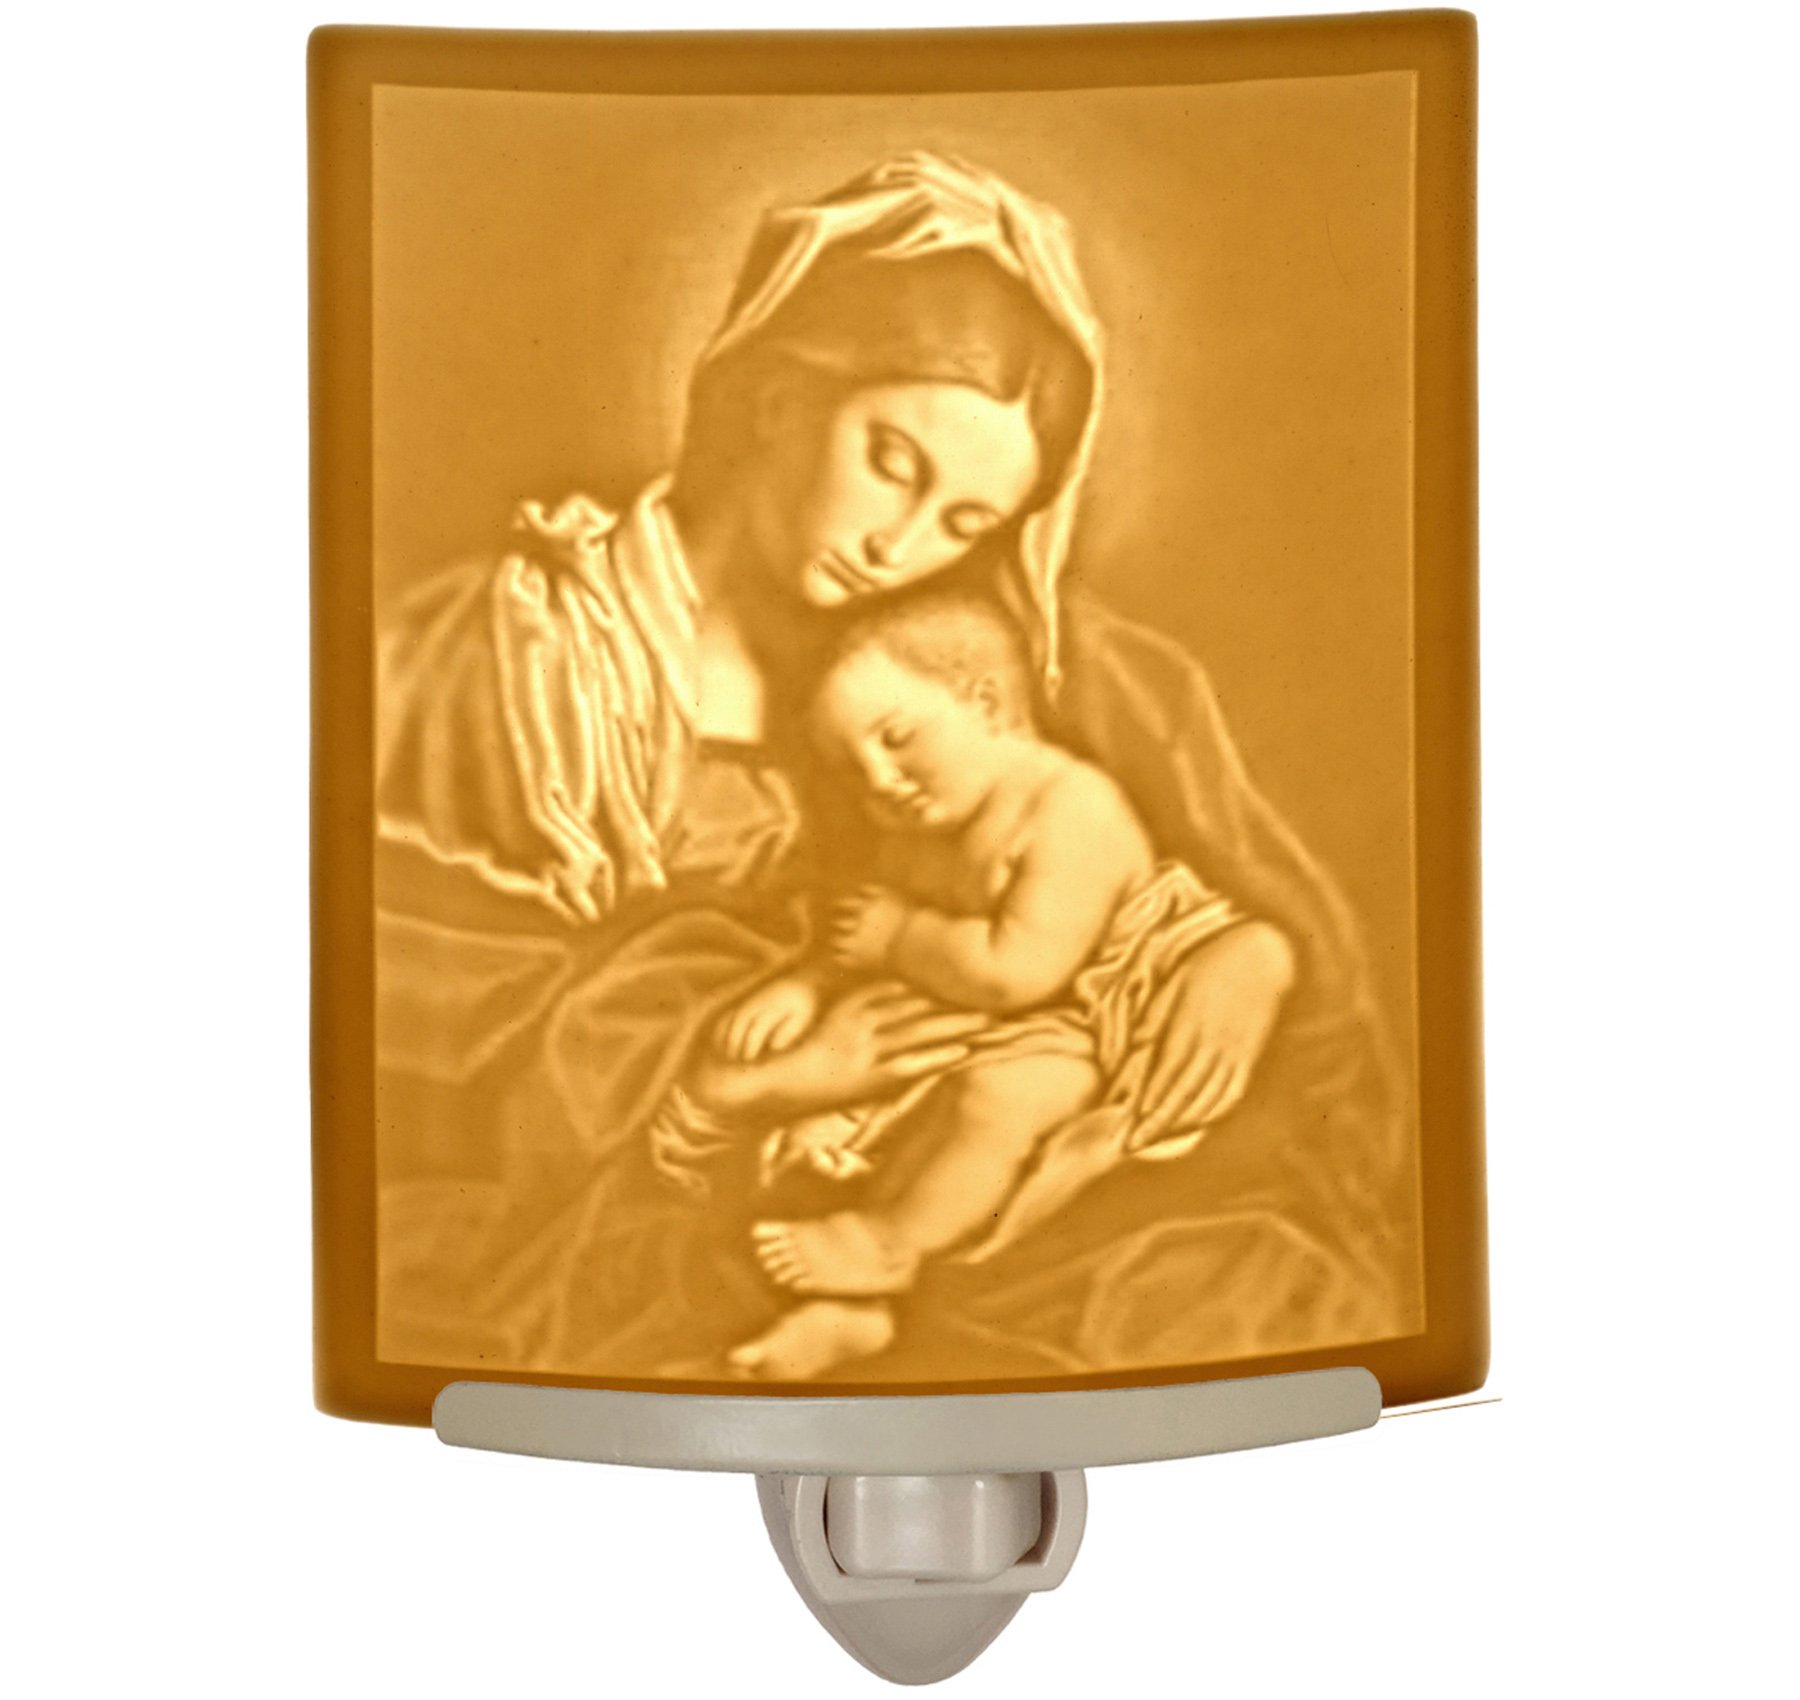 Madonna & Child - Mother Mary Curved Porcelain Lithophane Night by The Porcelain Garden (Image #1)